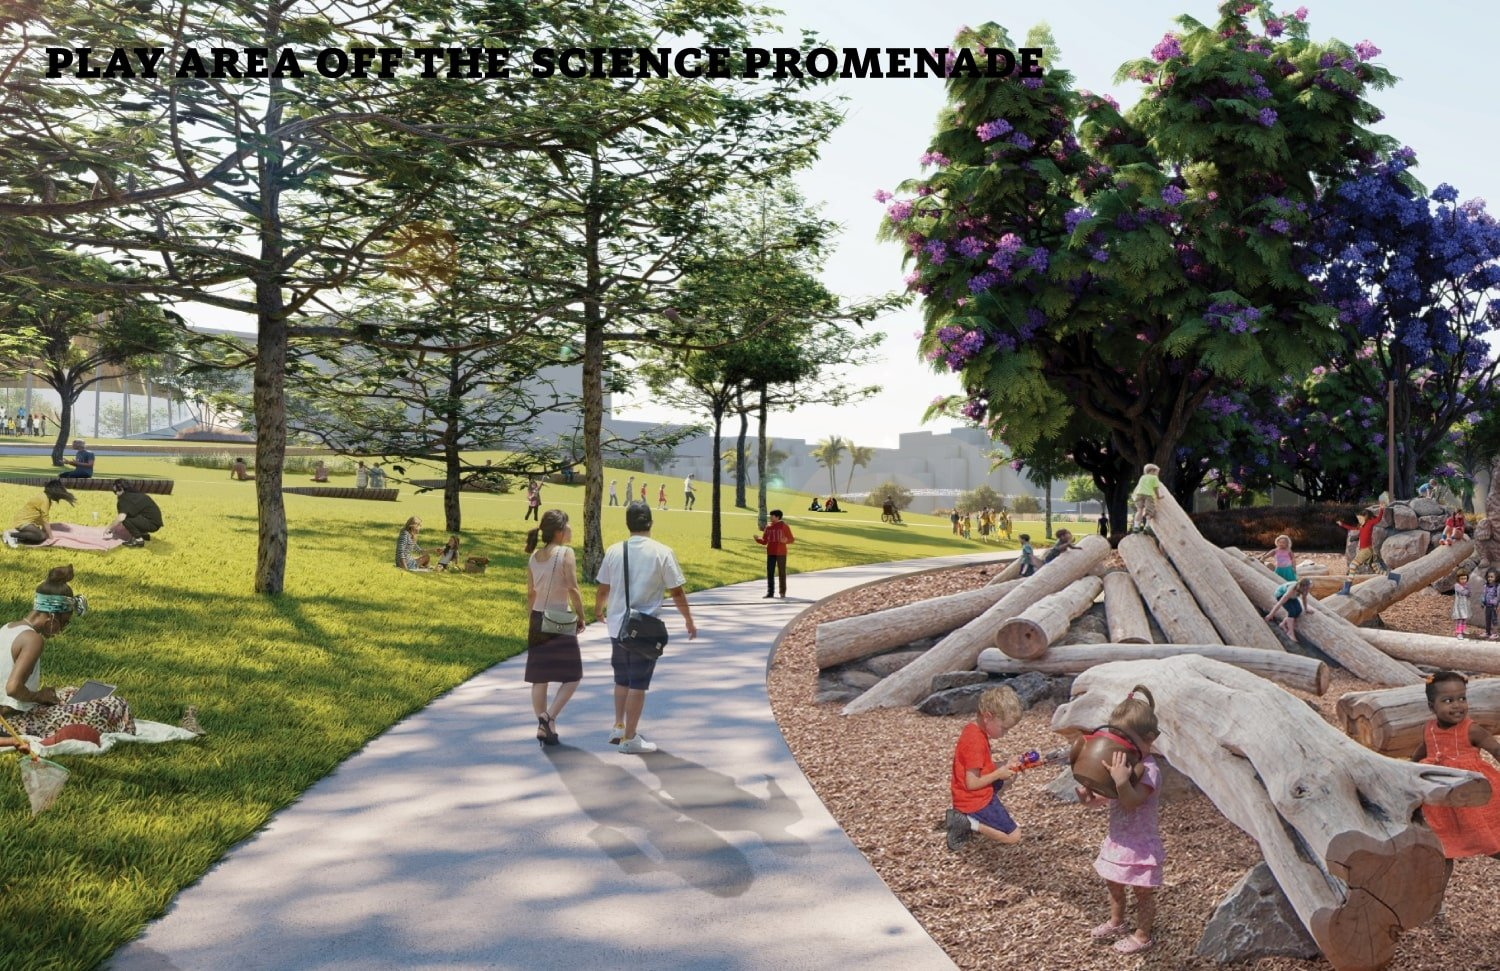 Play area off the science promenade WEISS/MANFREDI